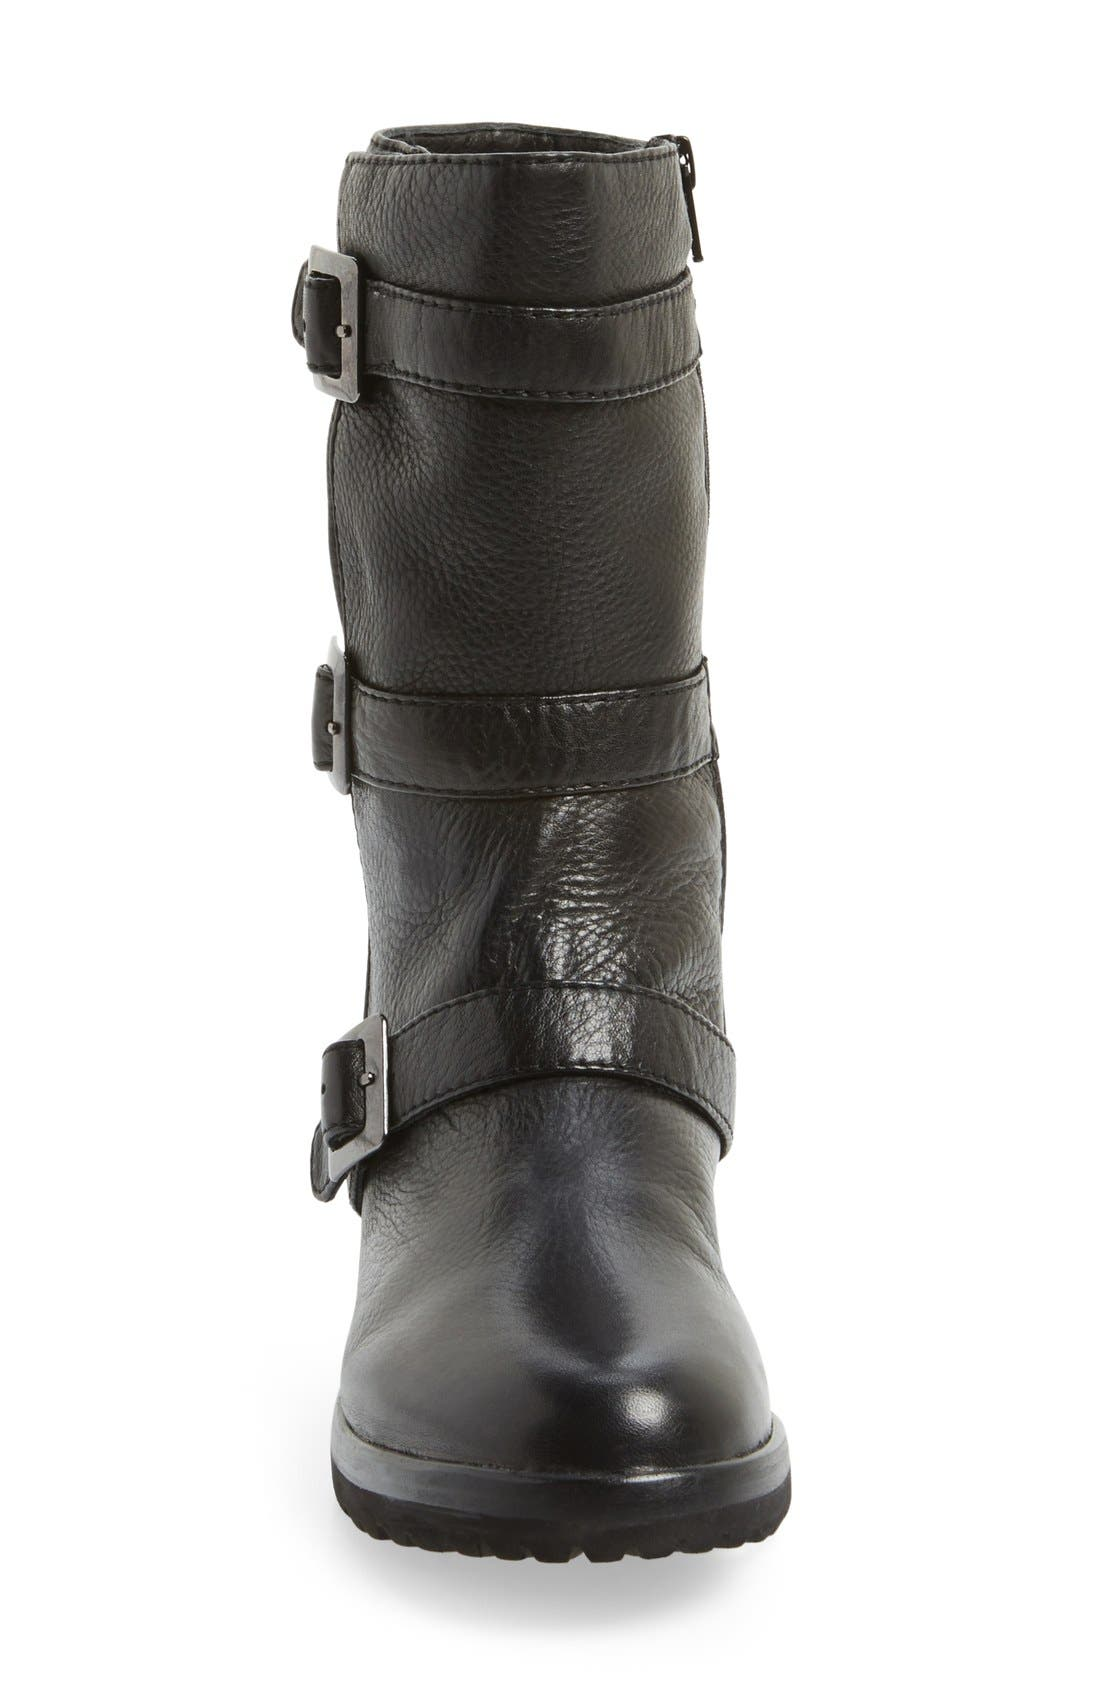 L'Amour Des Pieds 'Racey' Belted Mid Boot,                             Alternate thumbnail 4, color,                             001